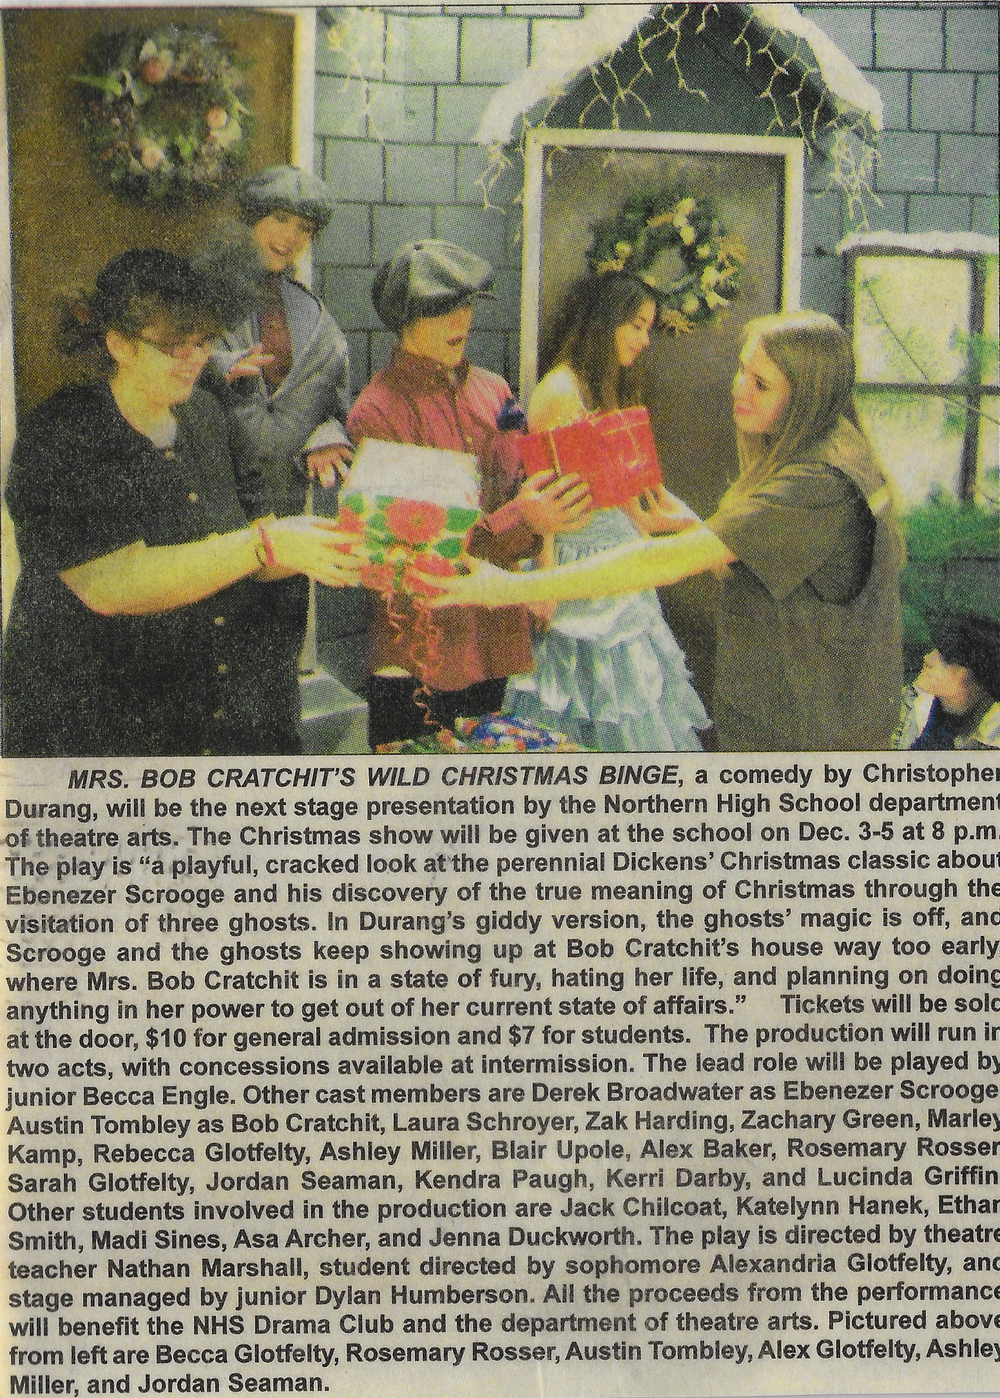 SOME PRESS FROM OUR CHRISTMAS PLAY